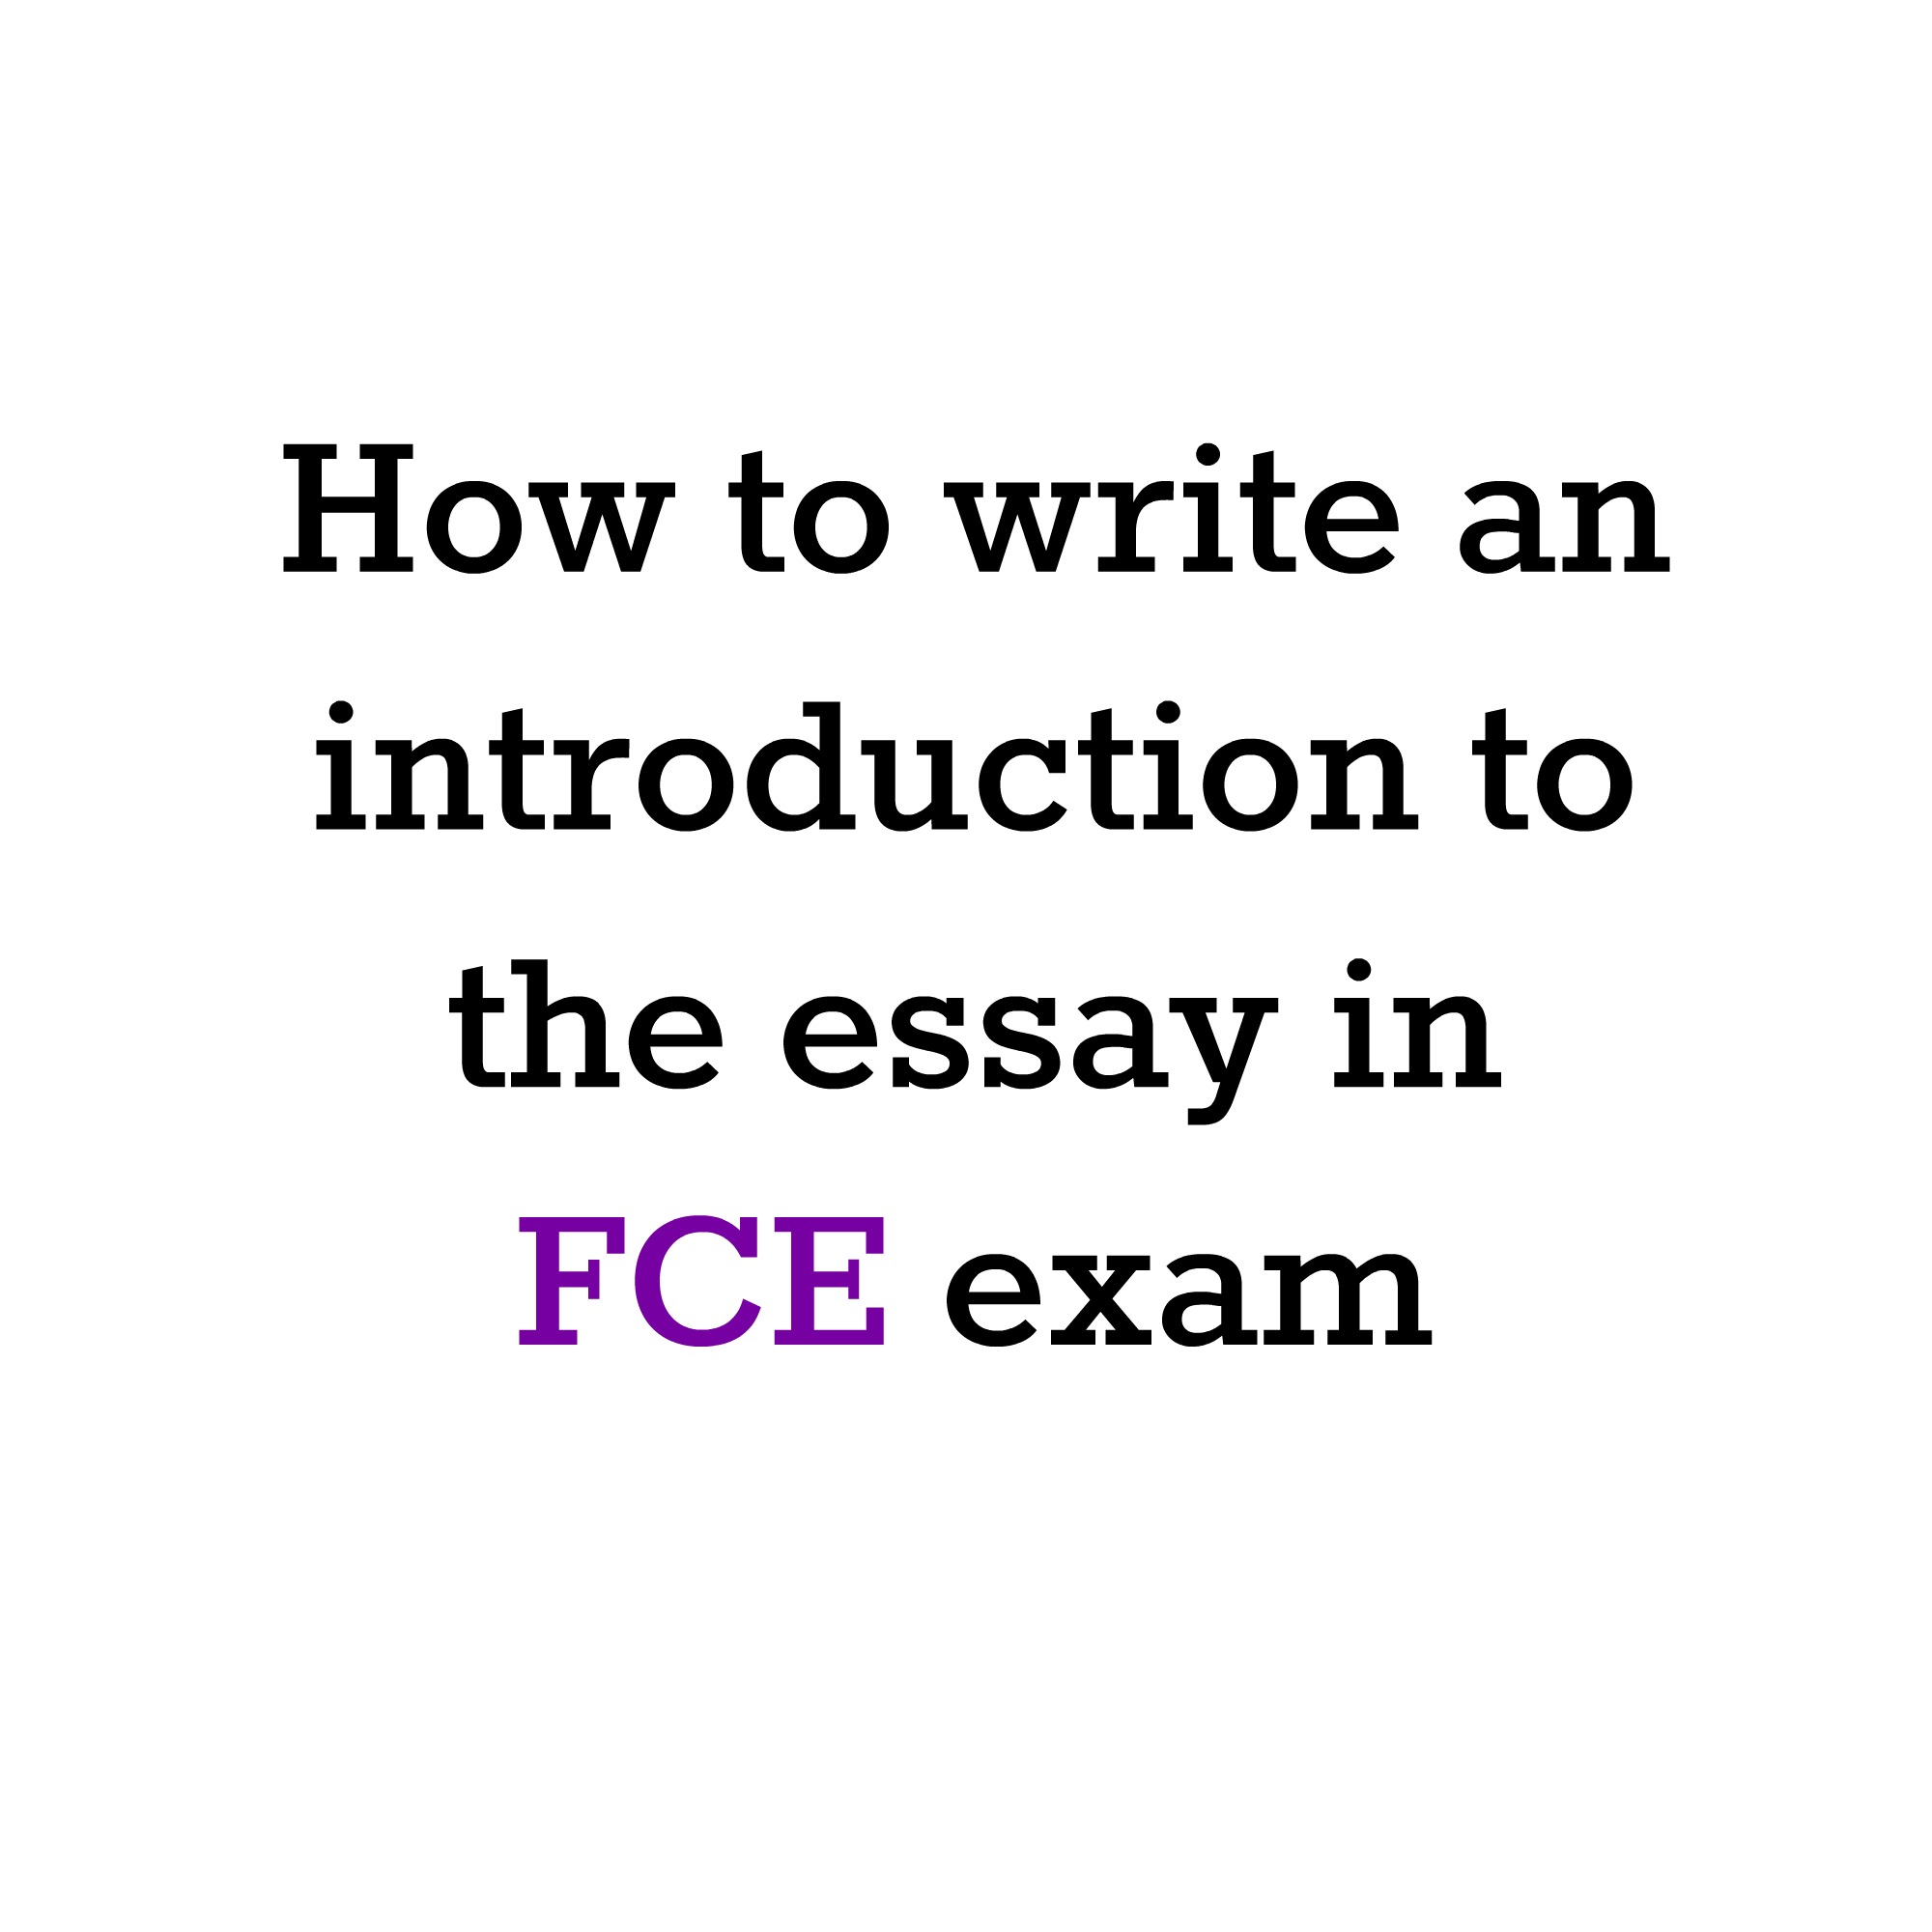 fce writing part essay d english exam help how to write an introduction to the essay in fce exam